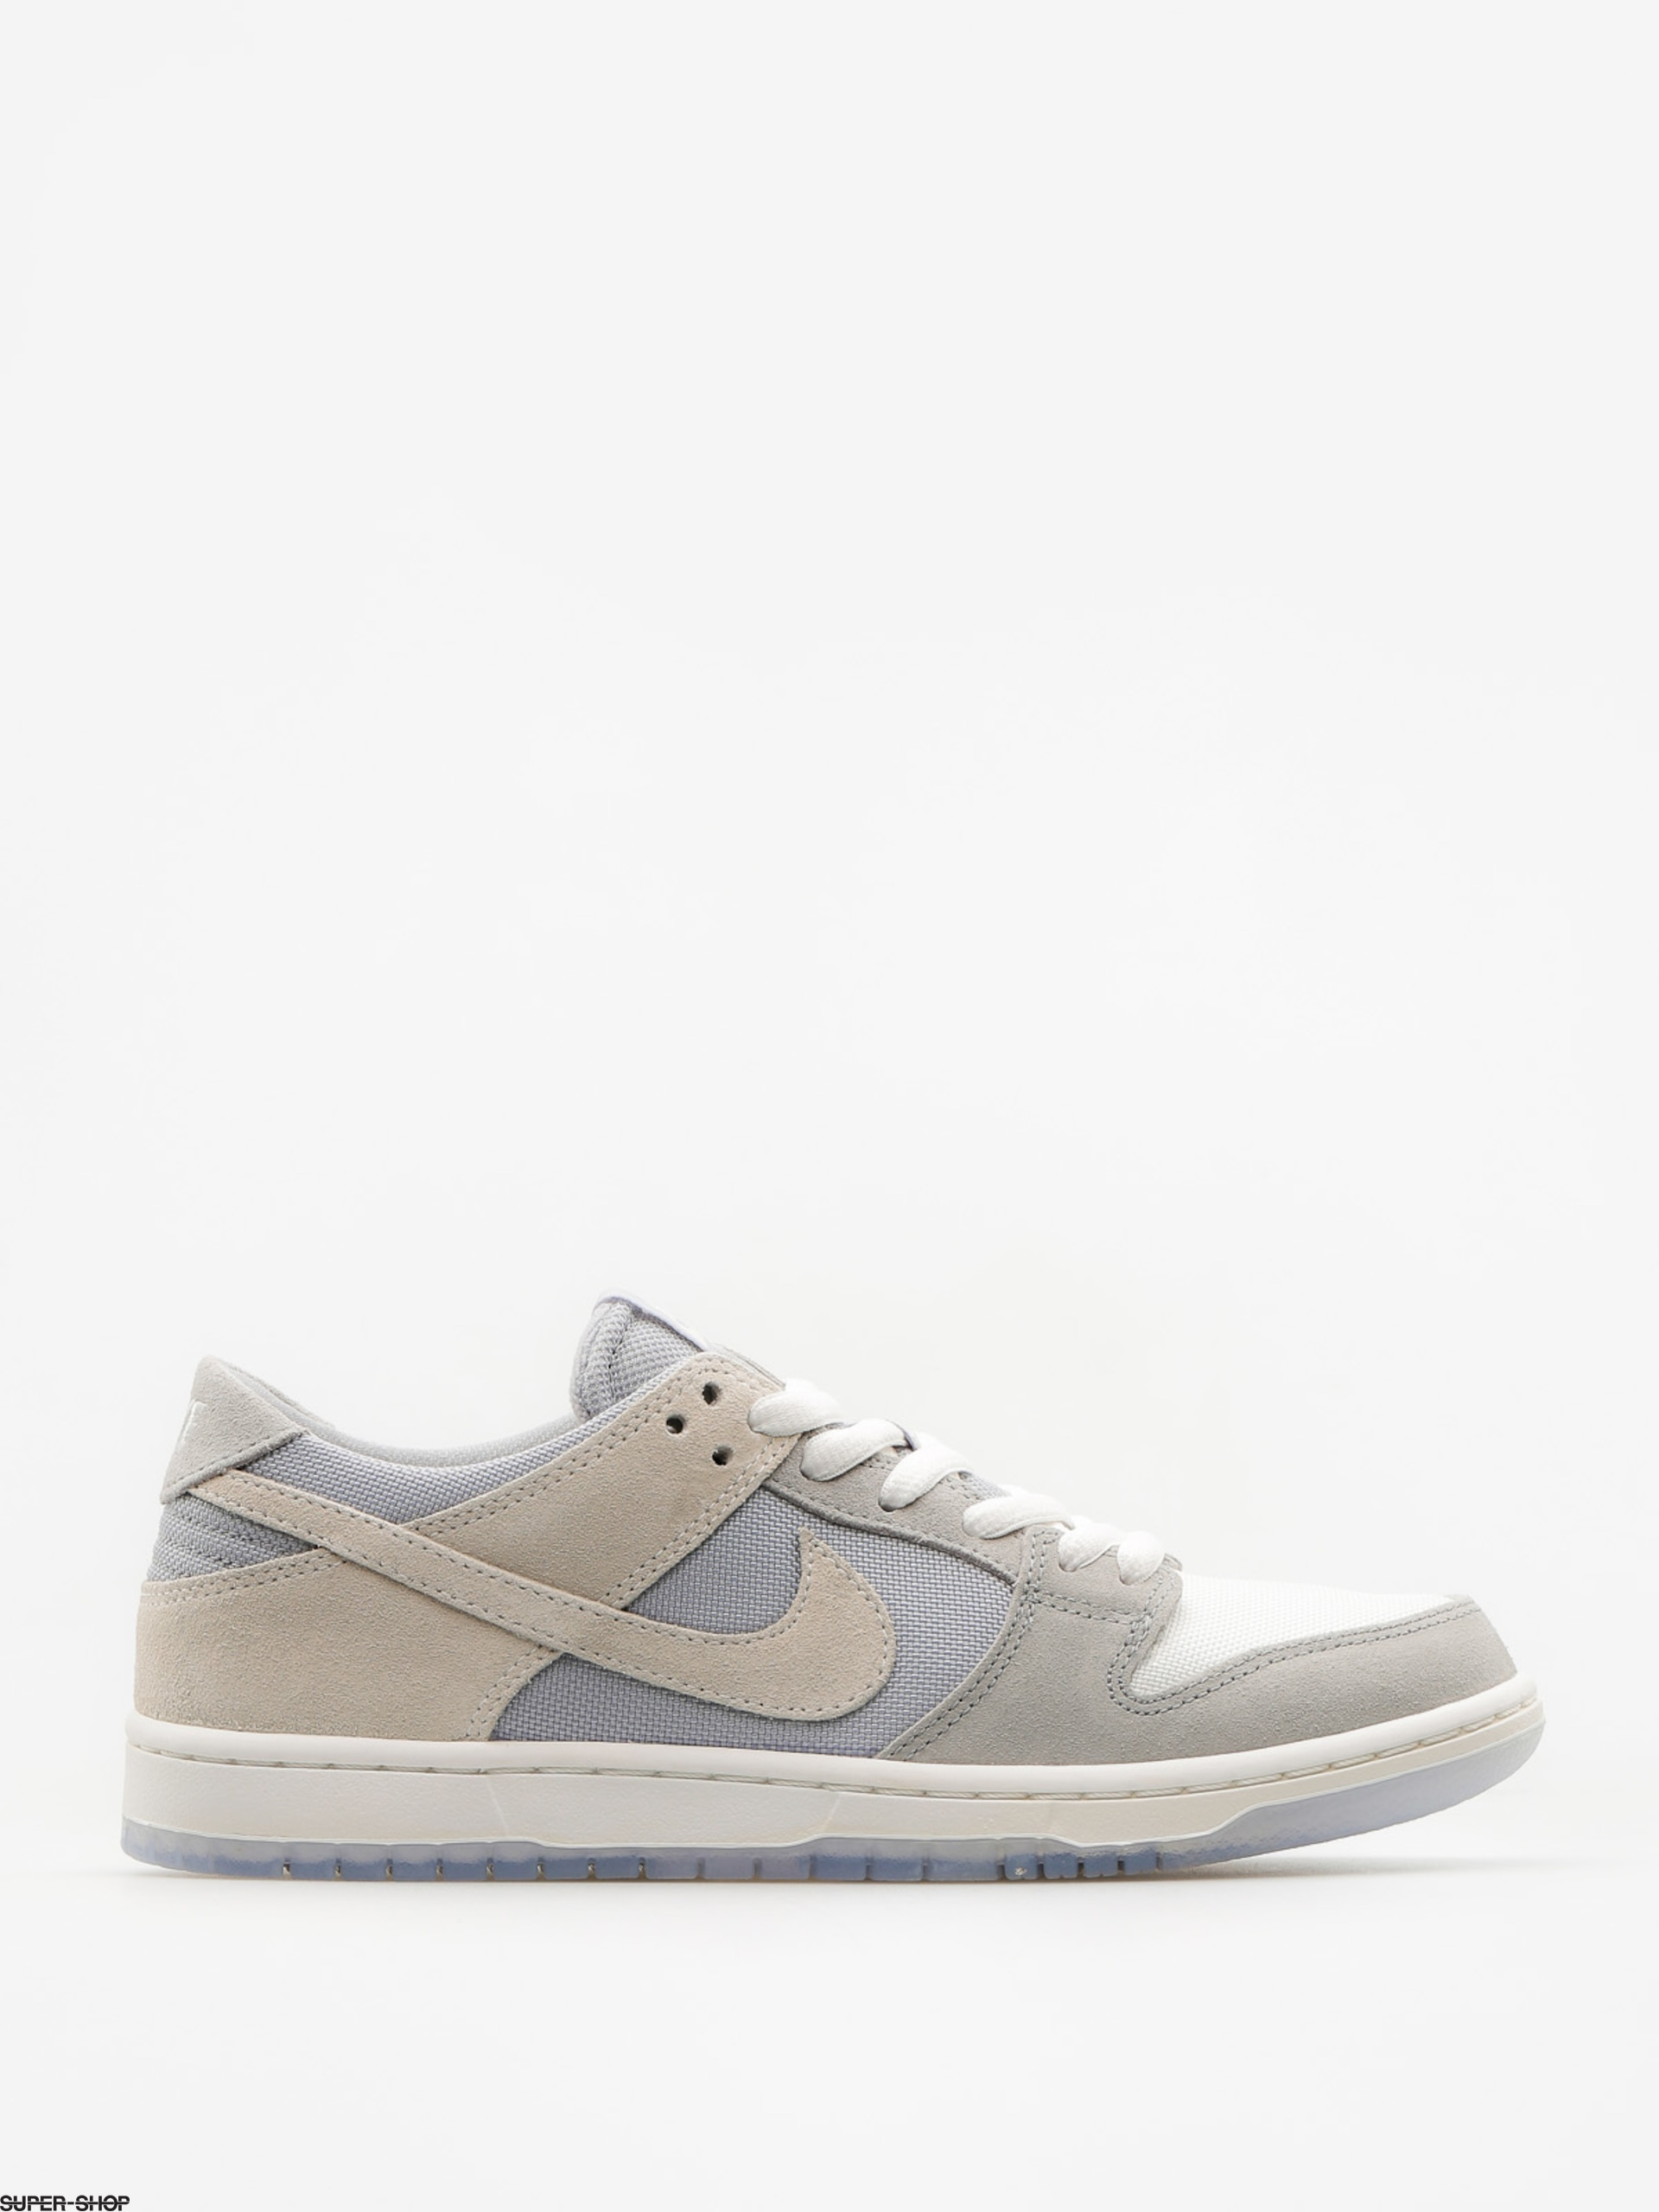 Nike SB Shoes Sb Zoom Dunk Low Pro (wolf grey/summit white clear)